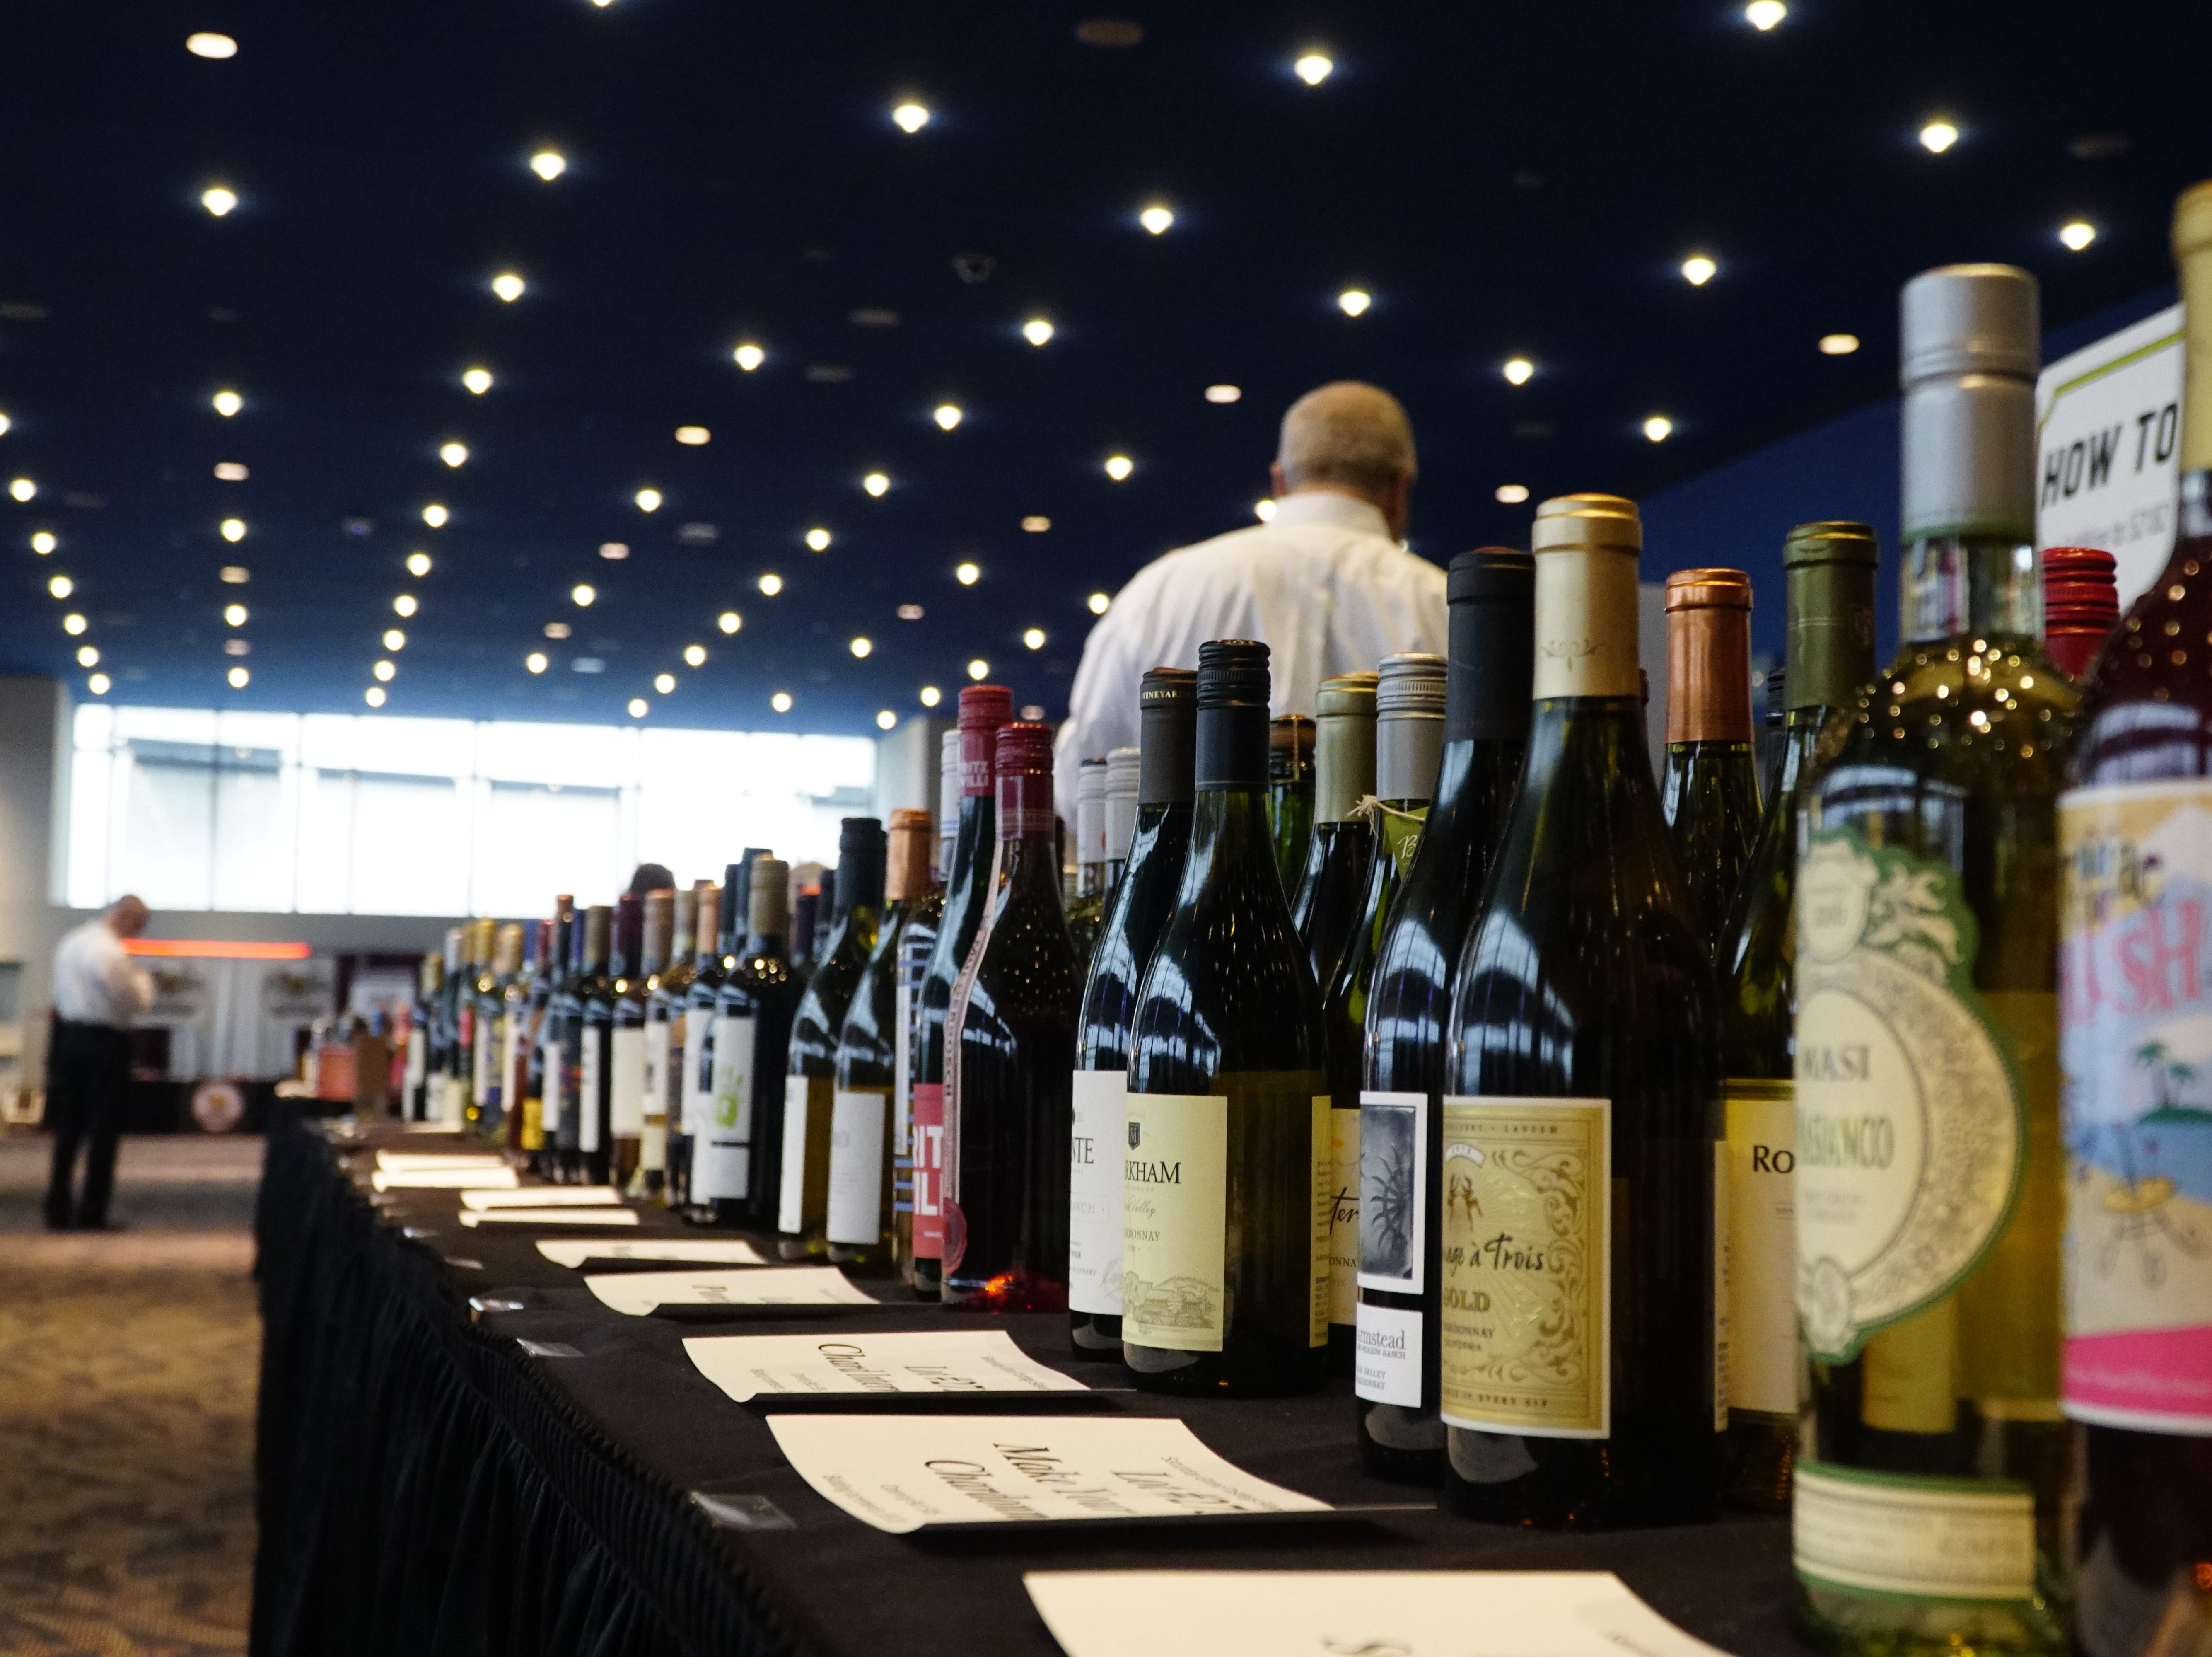 Collections of wine wait to be auctioned at The Cincinnati International Wine Festival, March 9, 2019.